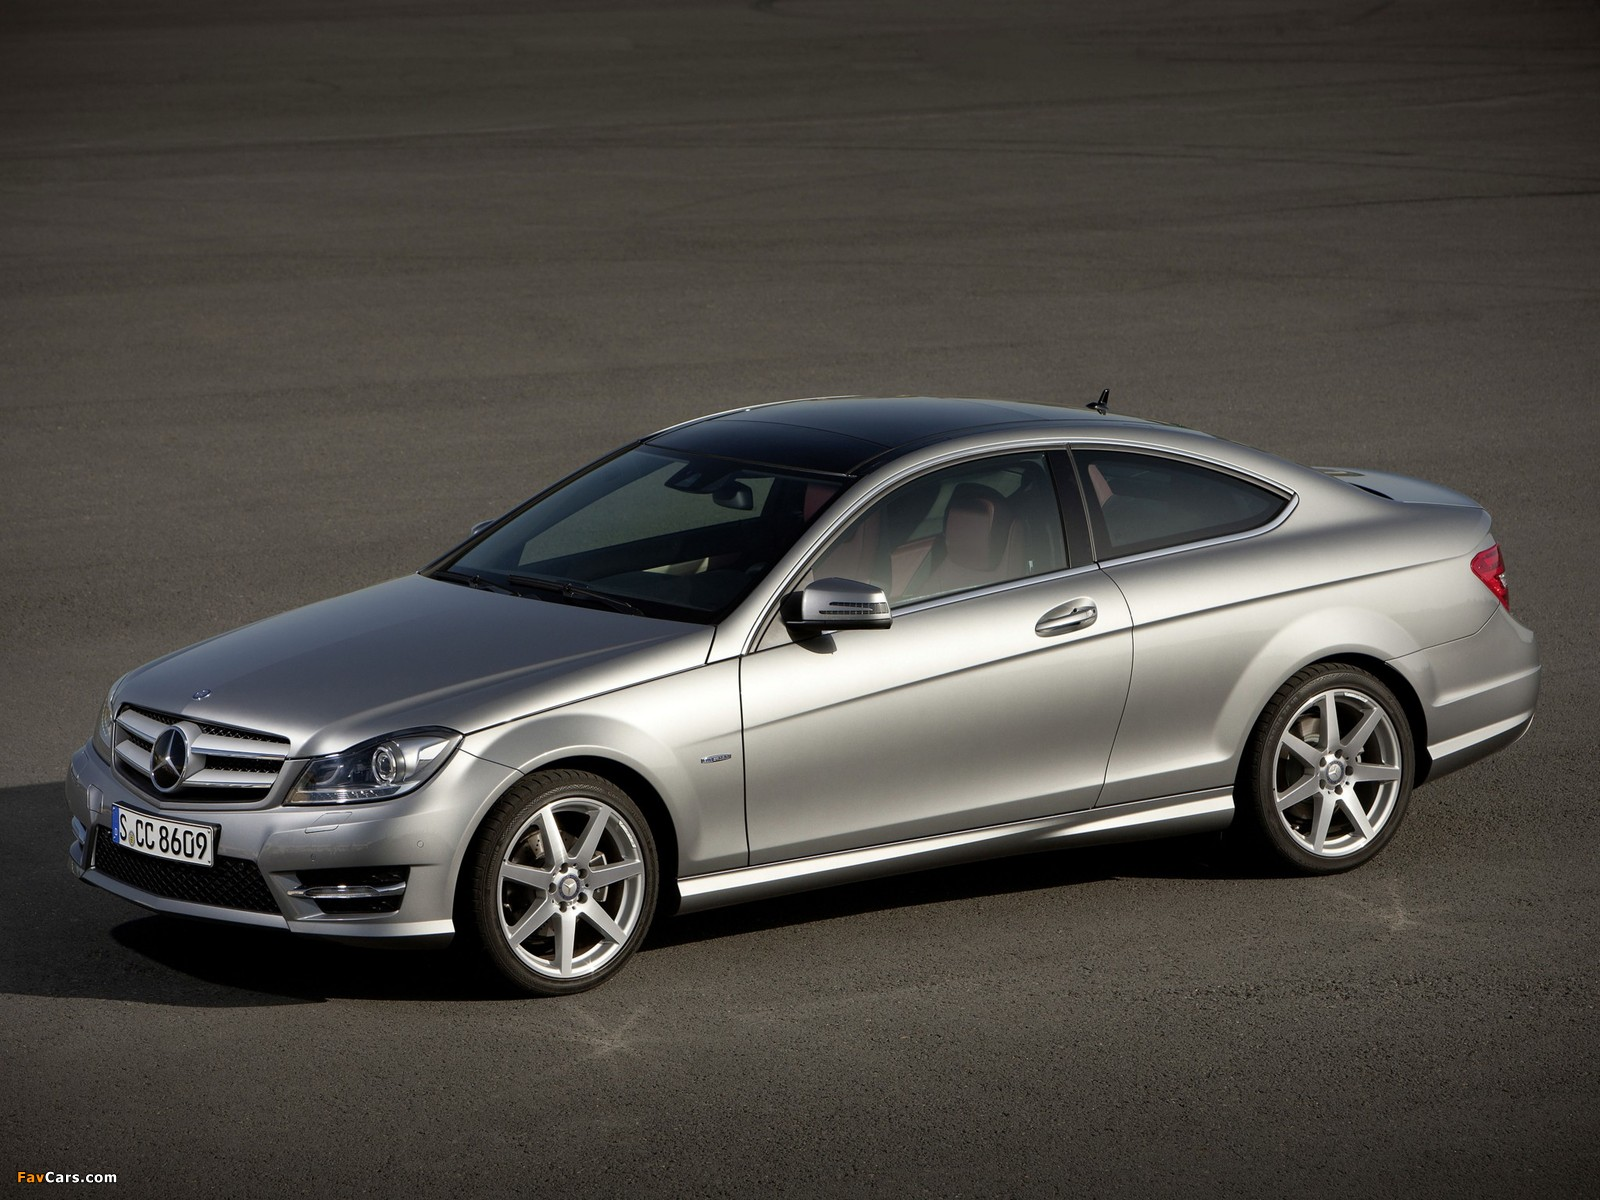 Mercedes-Benz C 250 Coupe (C204) 2011 wallpapers (1600 x 1200)